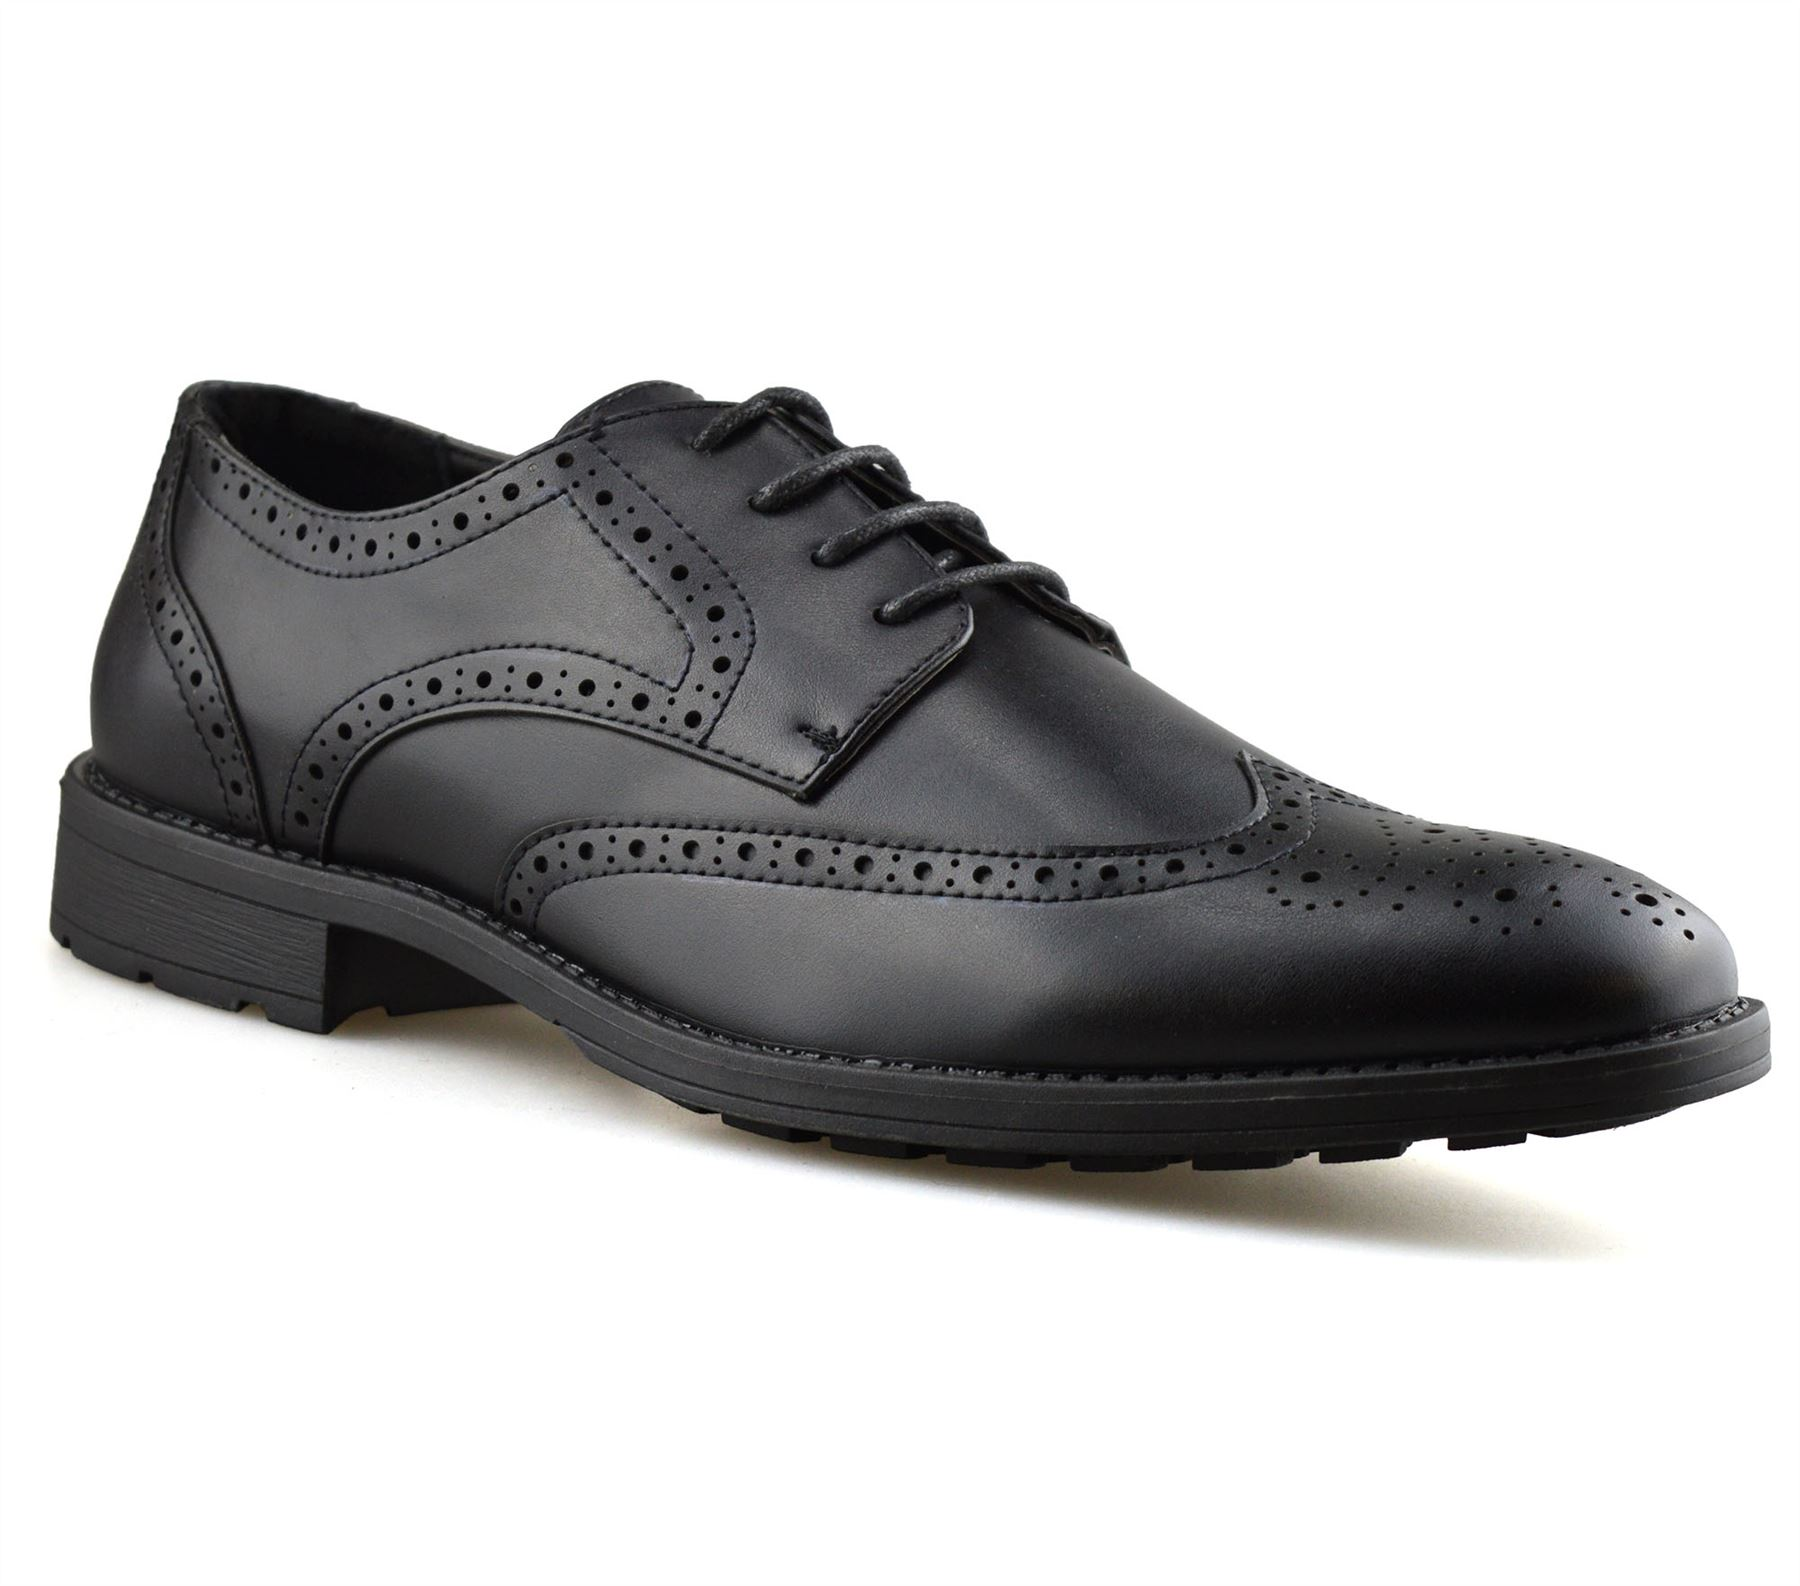 Mens-Smart-Casual-Lace-Up-Formal-Oxford-Brogues-Walking-Work-Office-Shoes-Size thumbnail 8